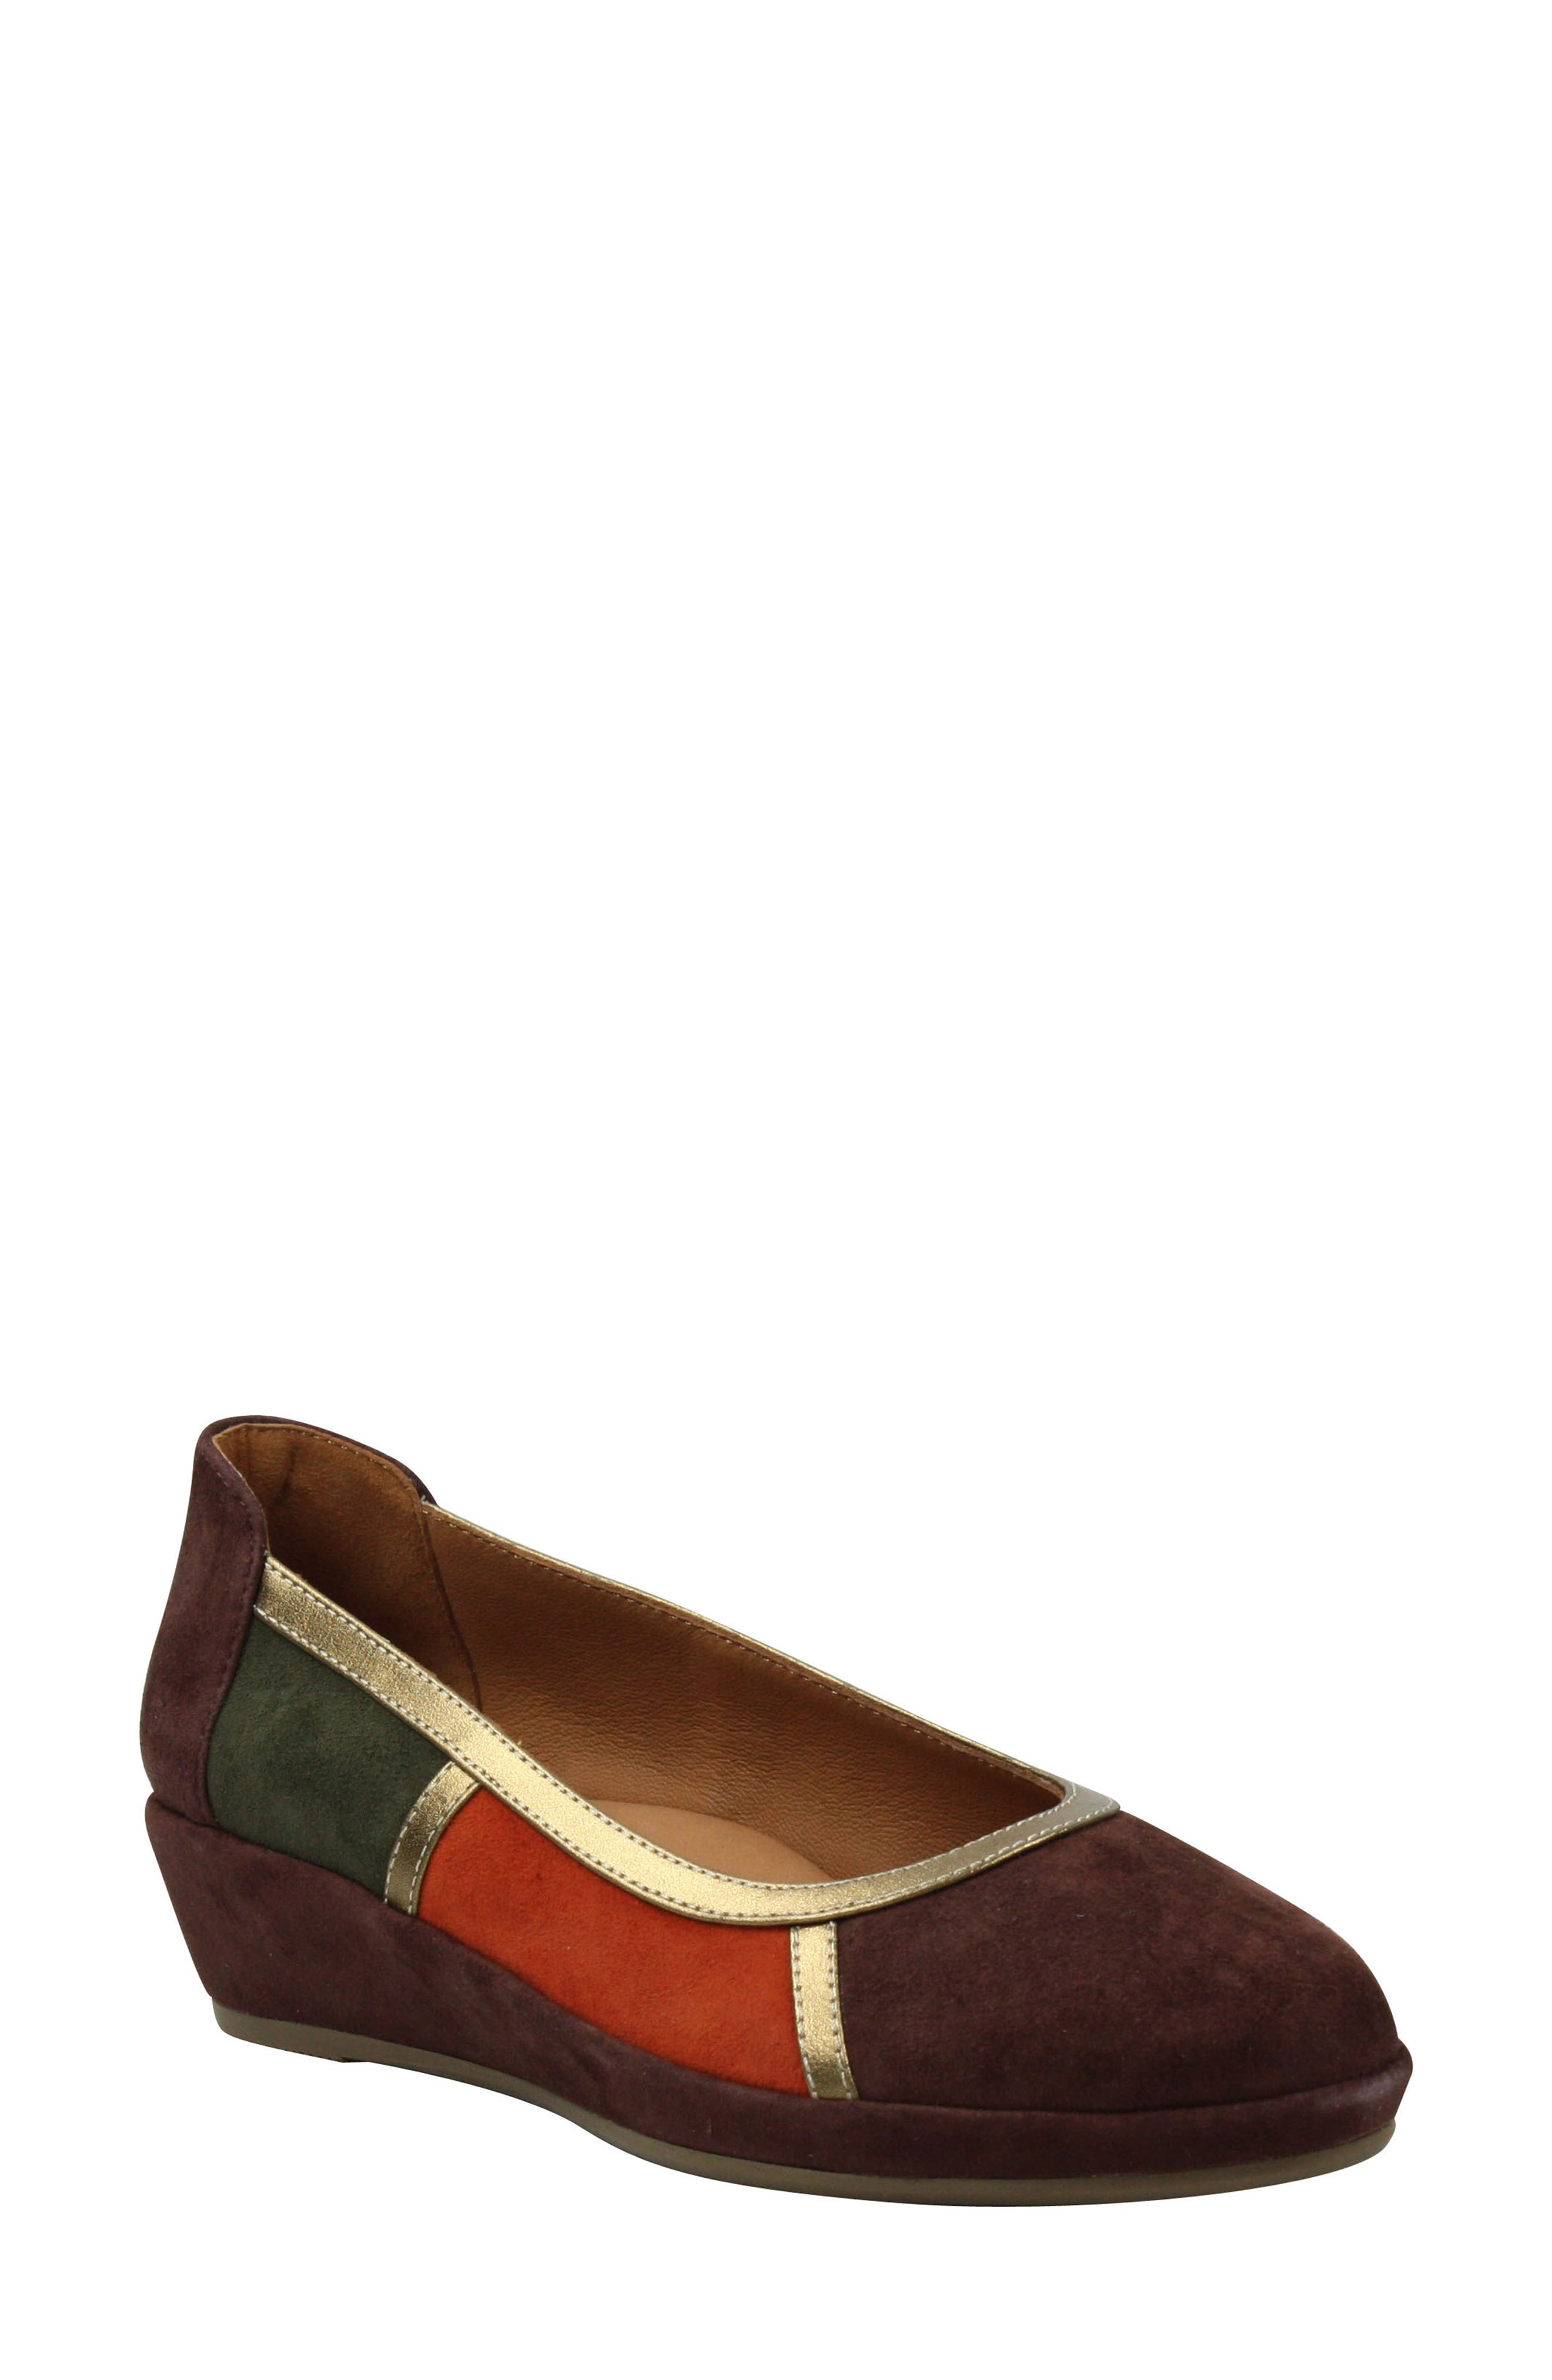 Betty Jane Wedge,                             Main thumbnail 1, color,                             ESPRESSO/ BRICK SUEDE